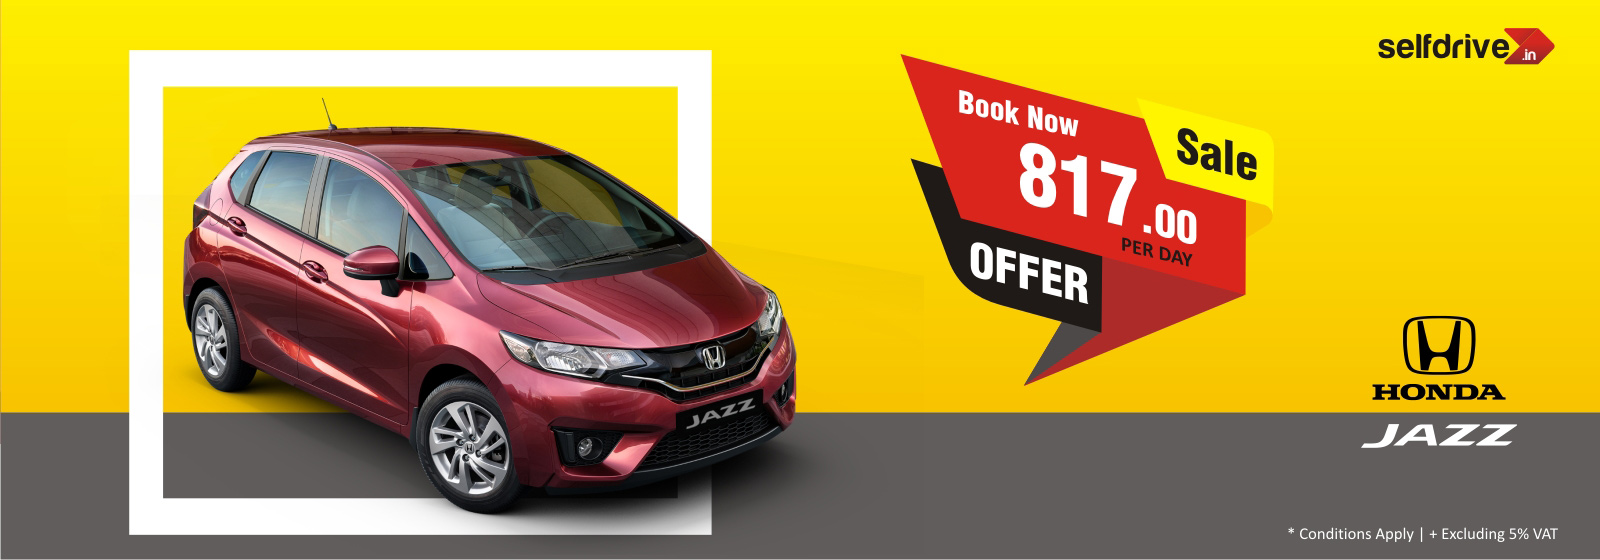 selfdrive.in : Honda Jazz